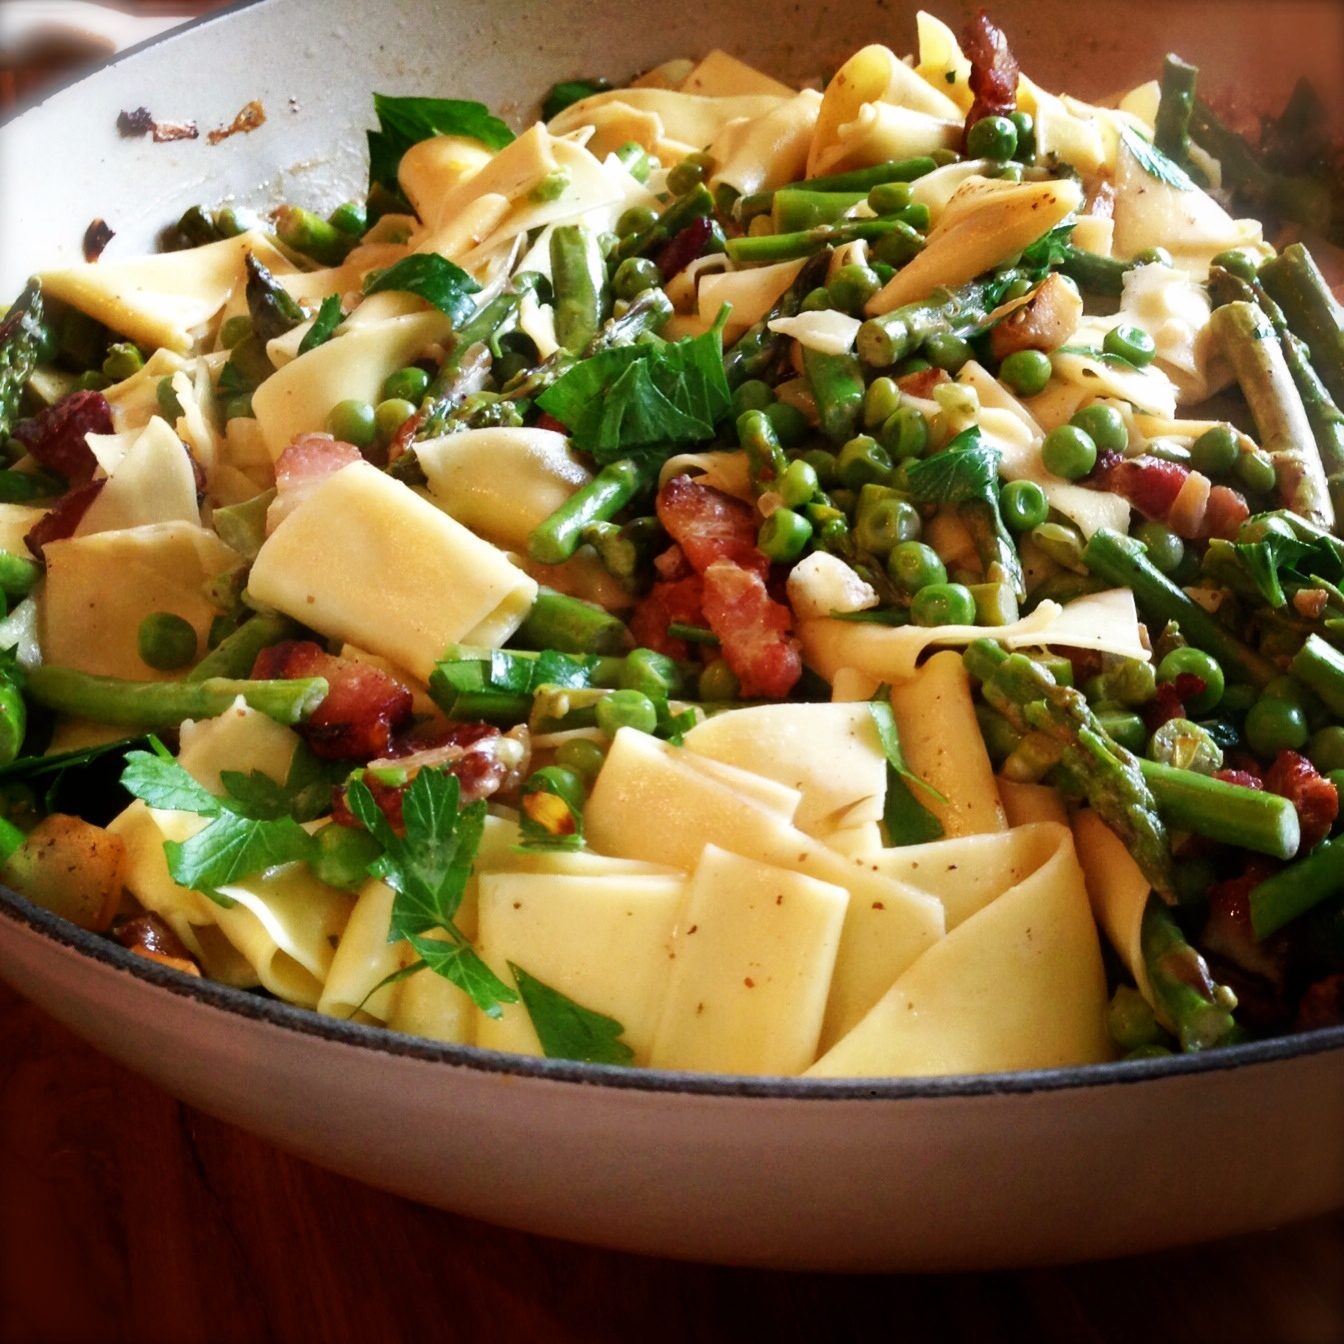 <p>One for the <strike>record</strike> recipe books!!</p> Asparagus, Spring Peas & Bacon with Pappardelle in a White Wine Cream Sauce